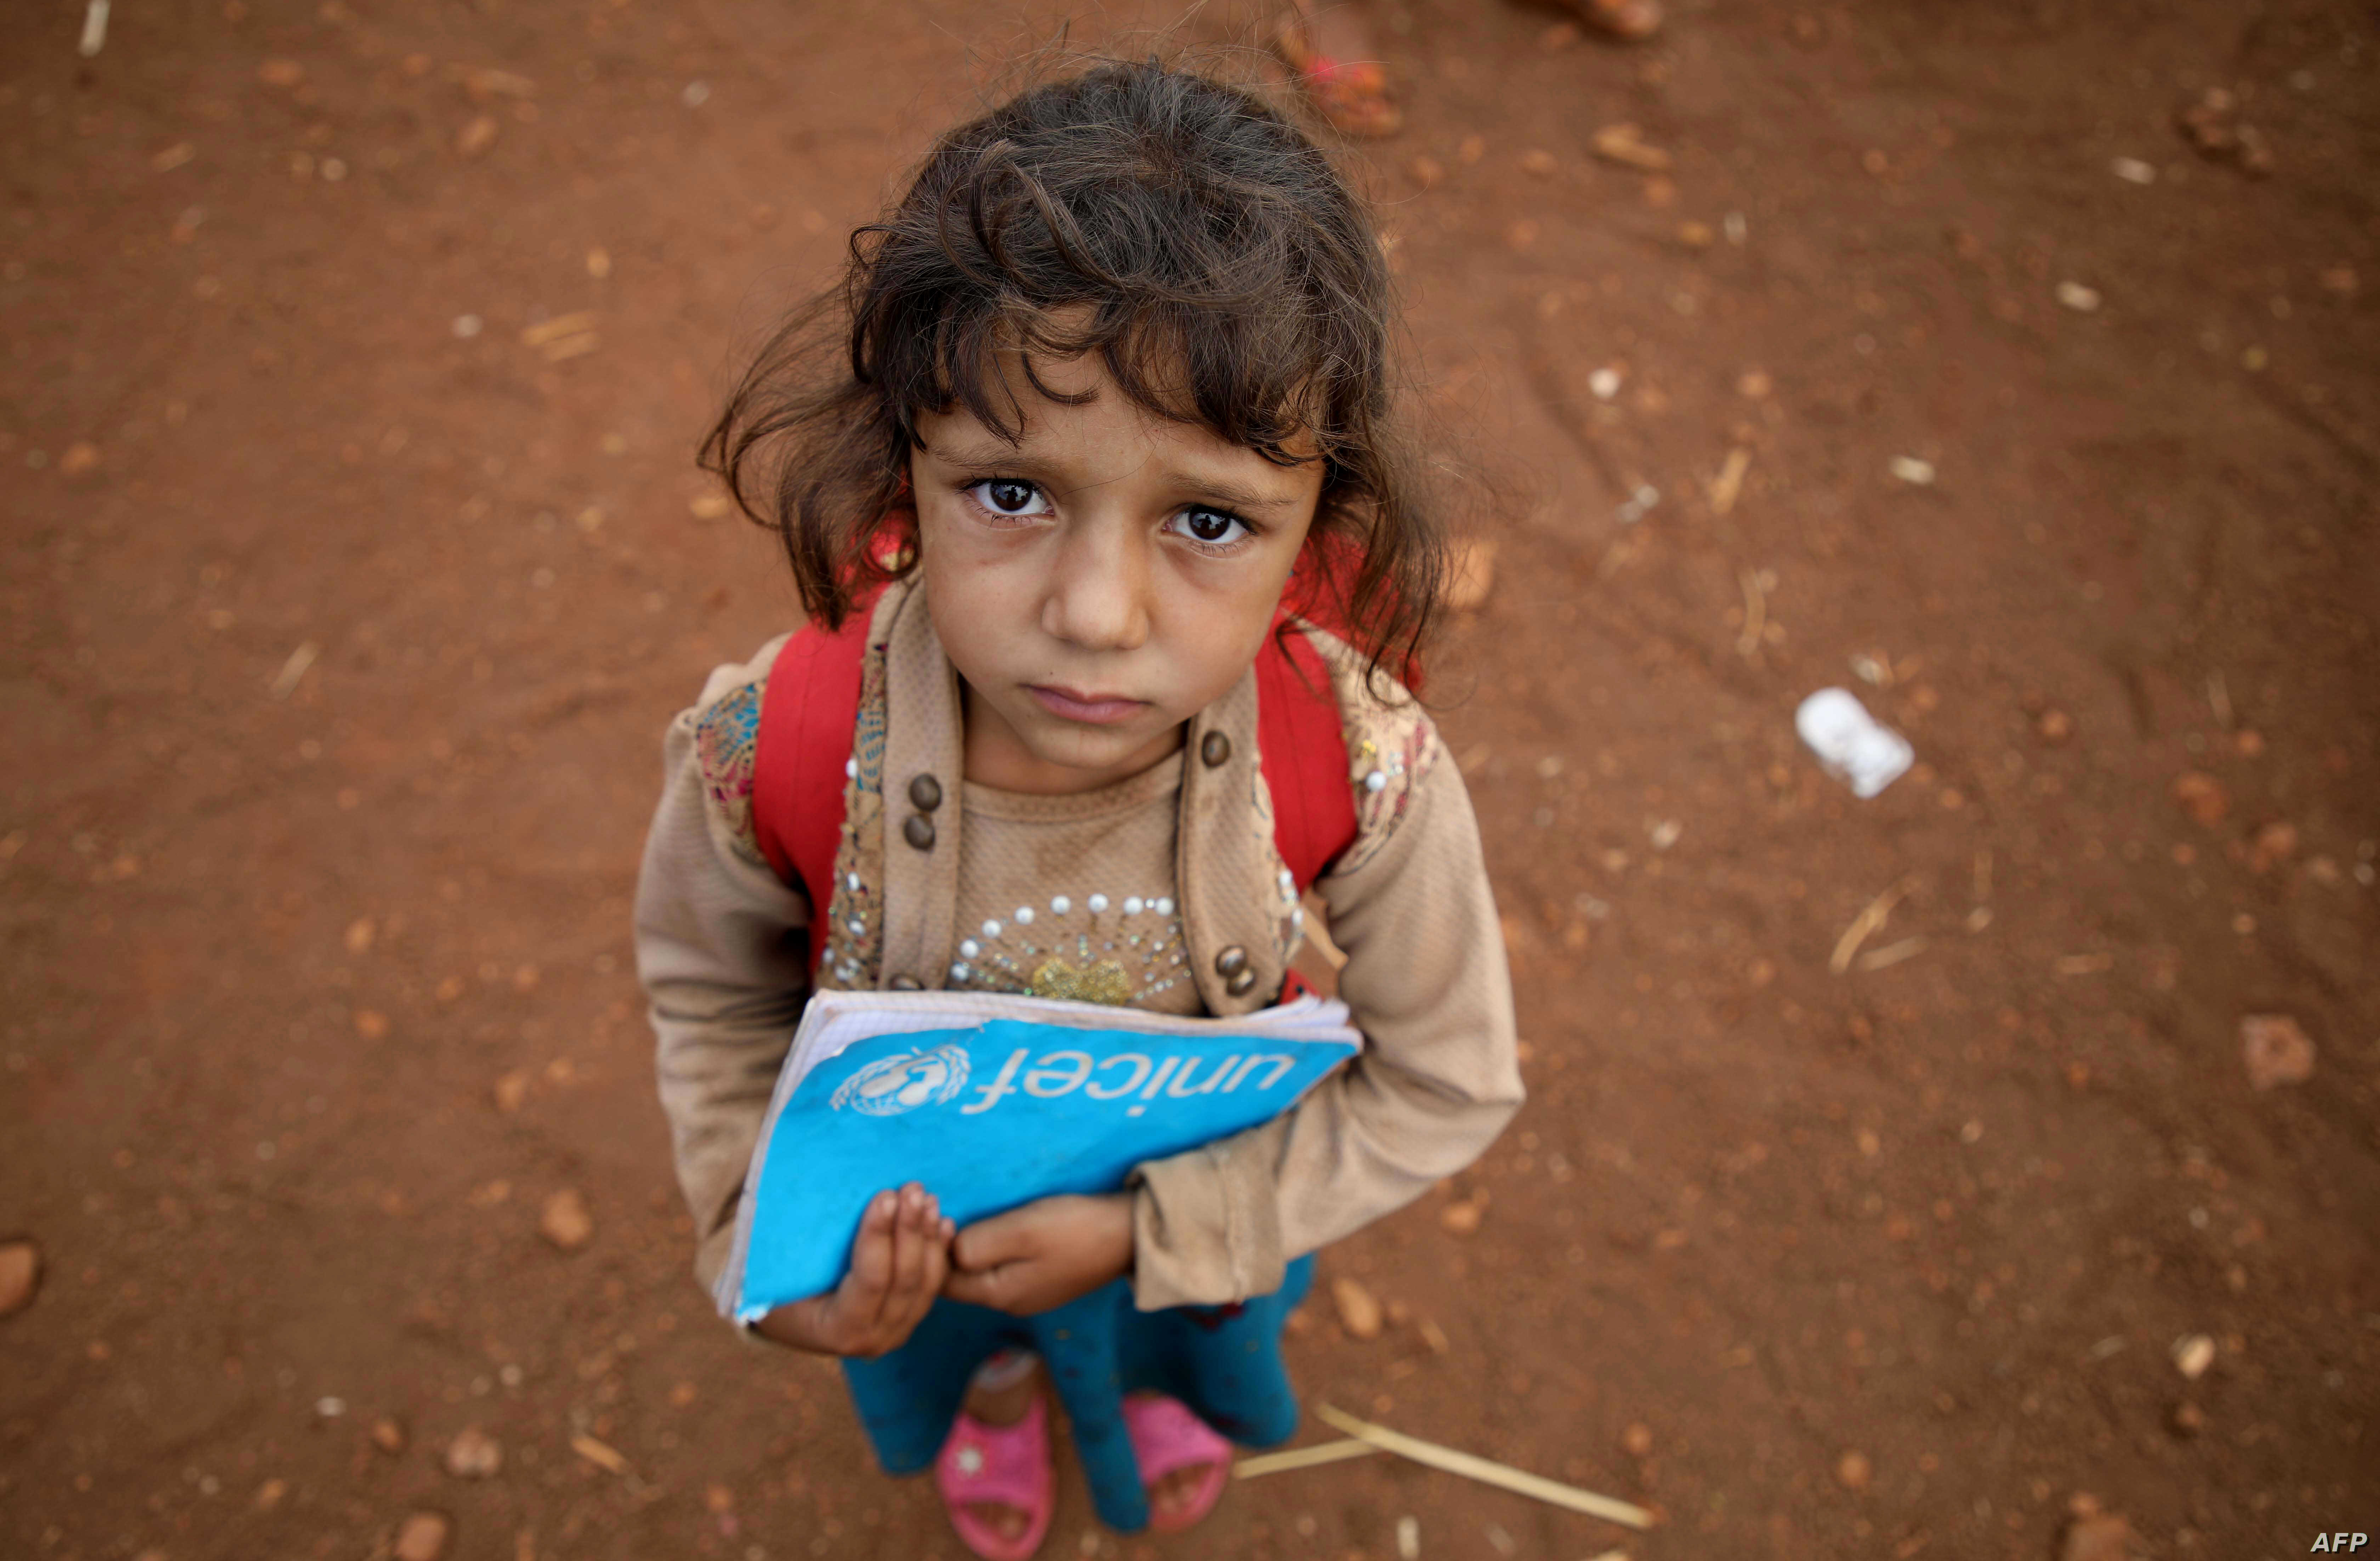 A Syrian child holds a book in the yard of a makeshift school in al-Jeneinah camp for displaced people in the village of Atme, in Syria's mostly rebel-held northern Idlib province.